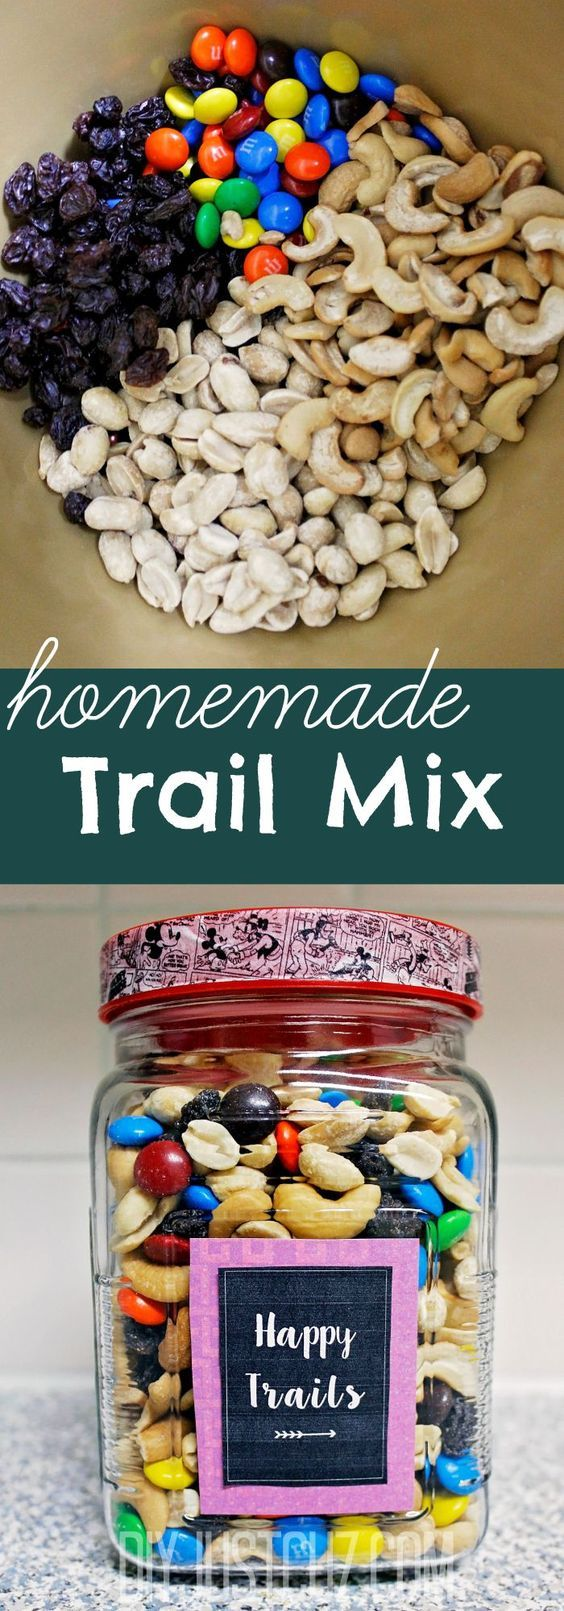 Stop buying expensive premade trail mix! Instead, check out these super simple recipes for homemade trail mix - so good you'll never buy it again! @diyjustcuz: